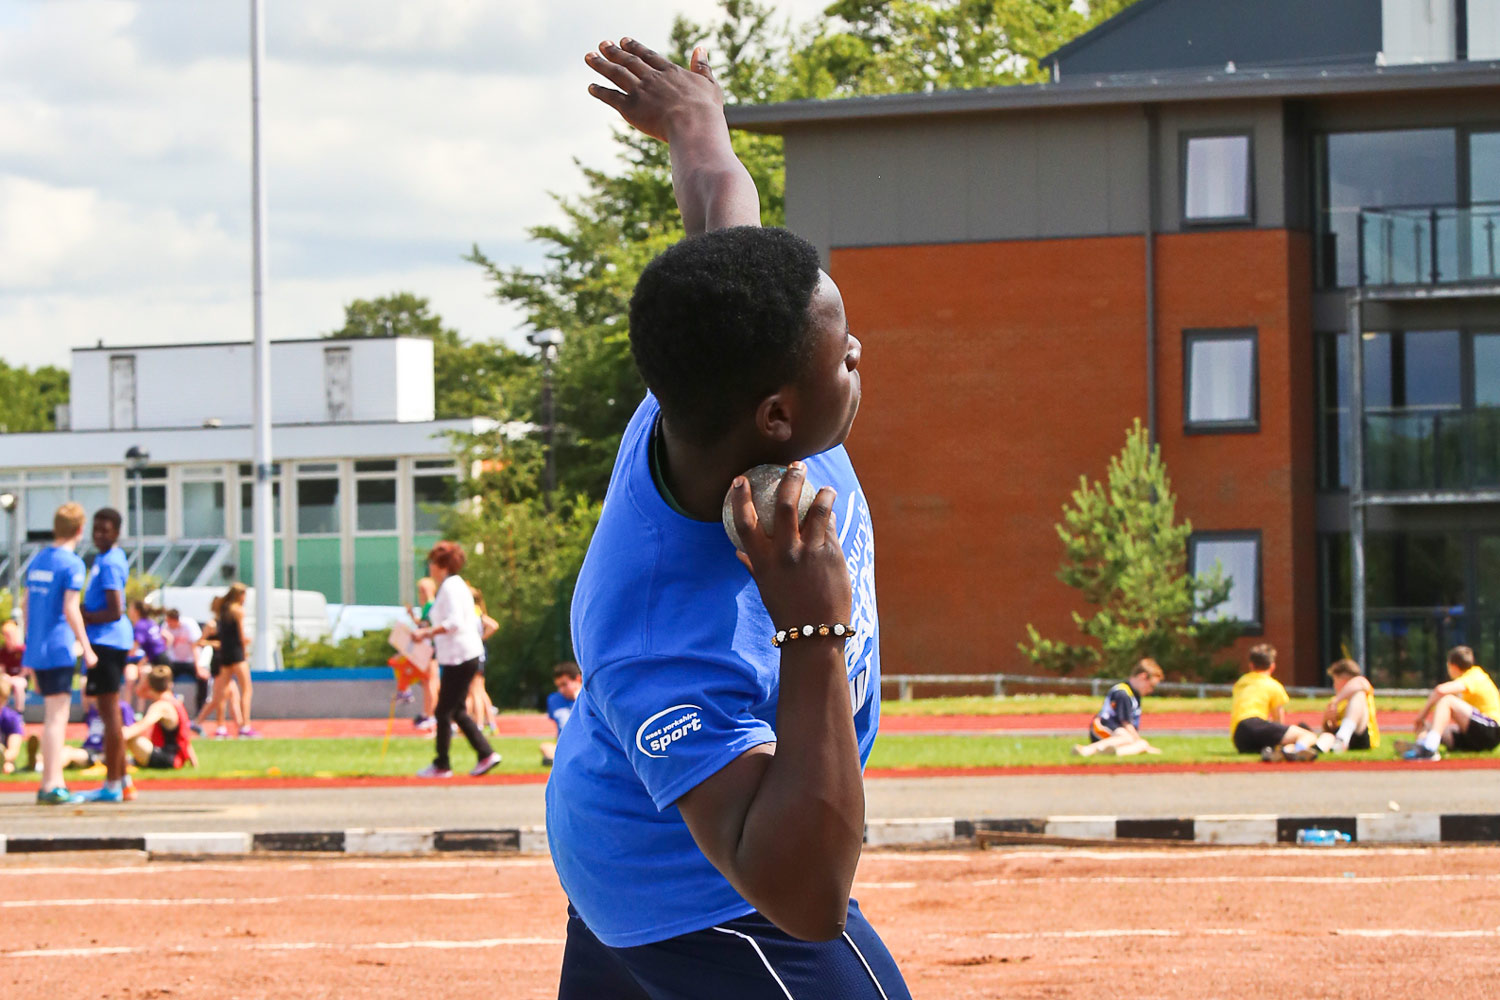 The School Games    Find out more